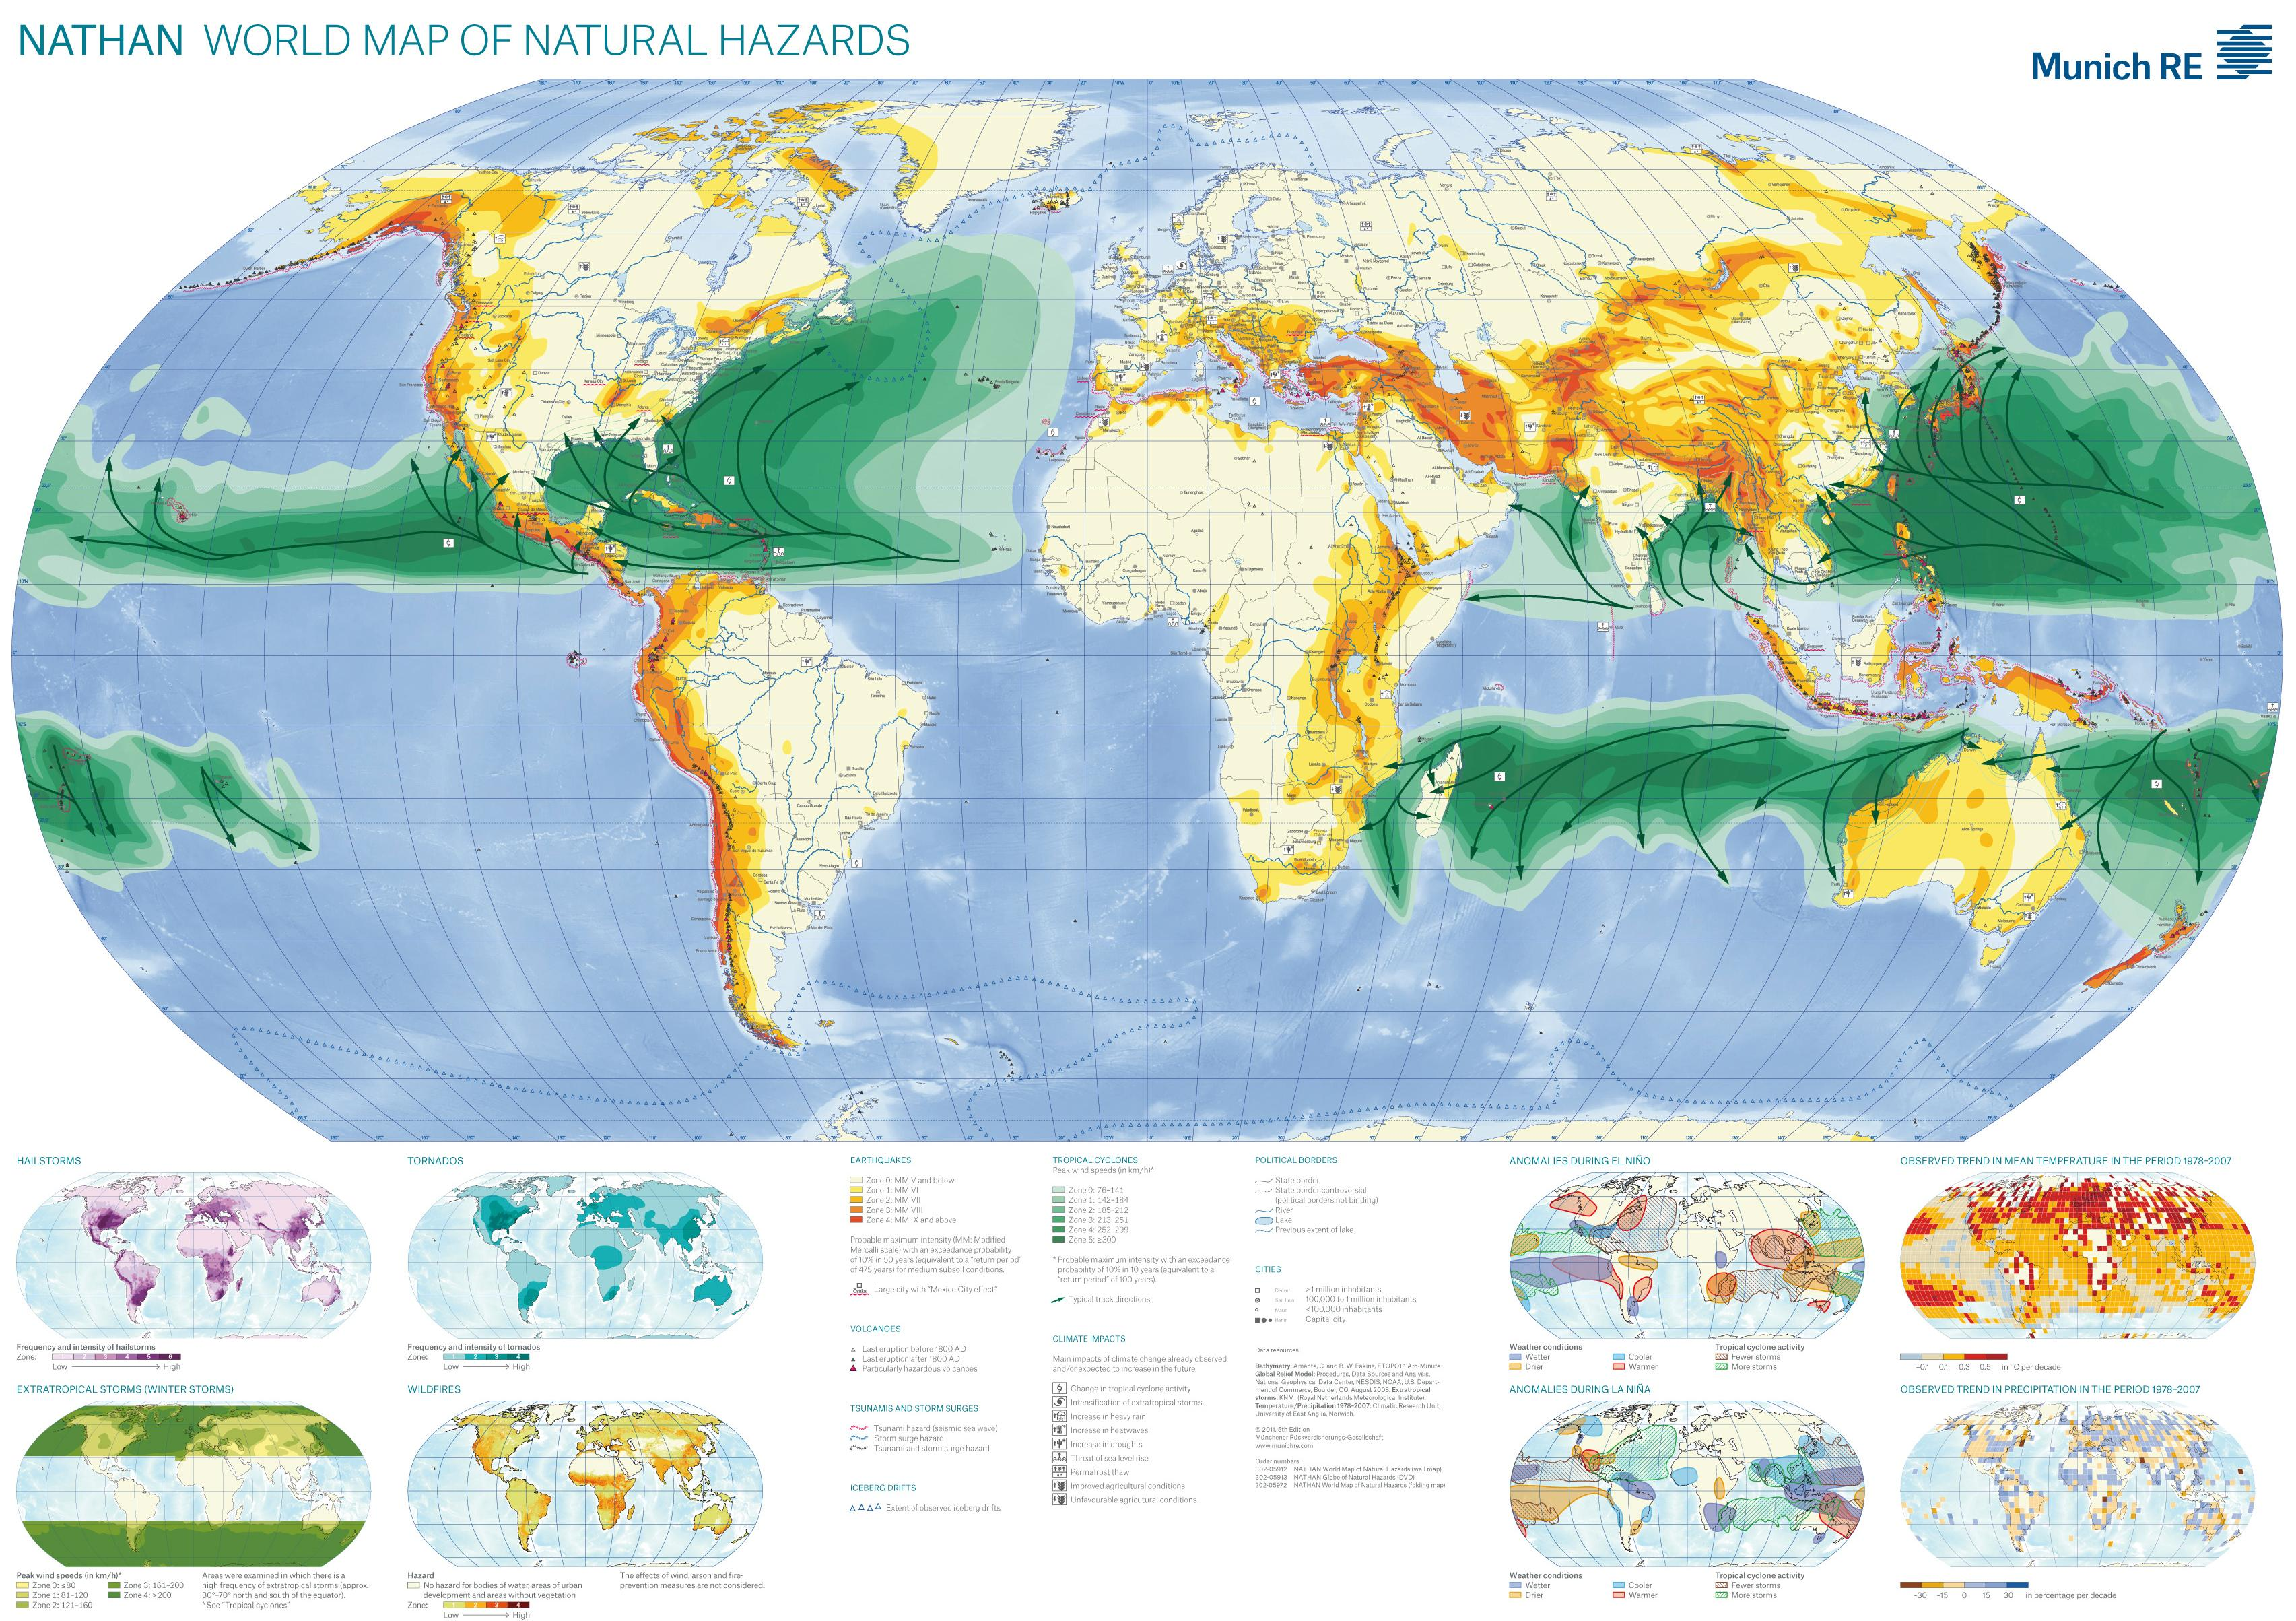 Natural hazard world map abrupt earth changes world map of natural hazareds gumiabroncs